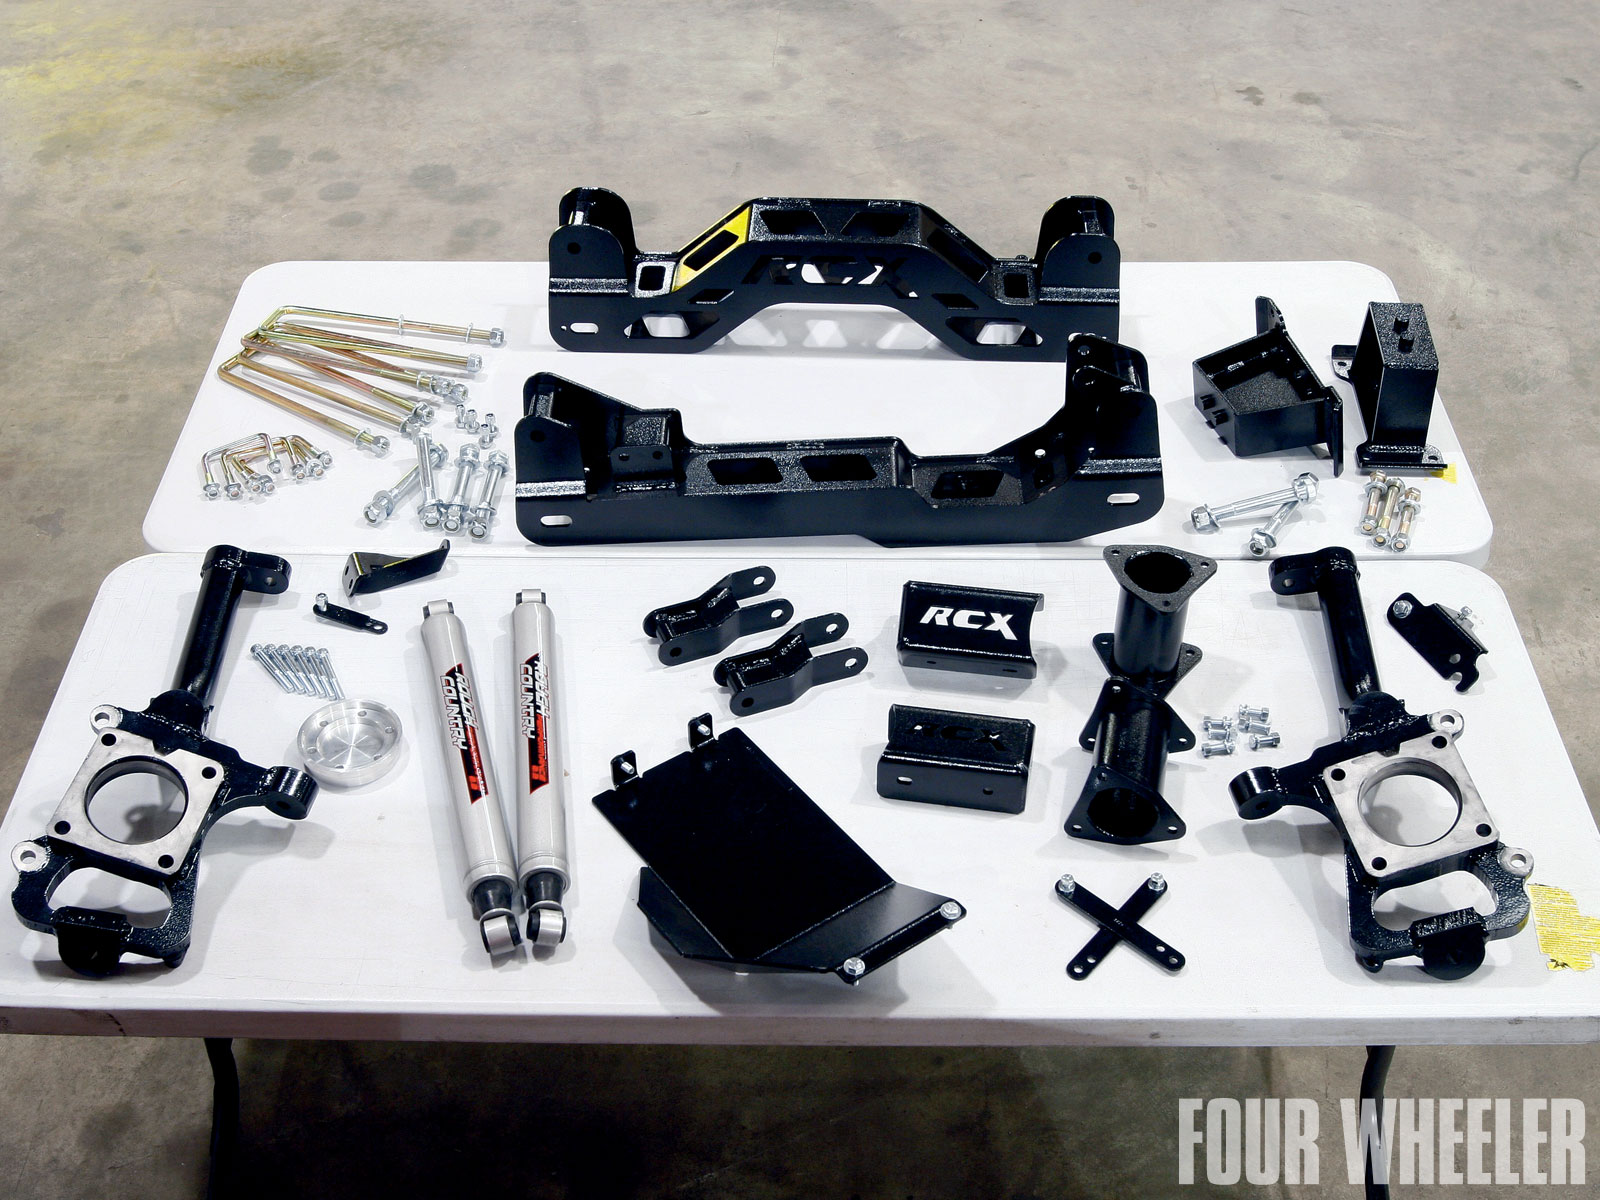 rough Countrys 4 Inch Suspension Lift lift Kit Table Photo 34183965